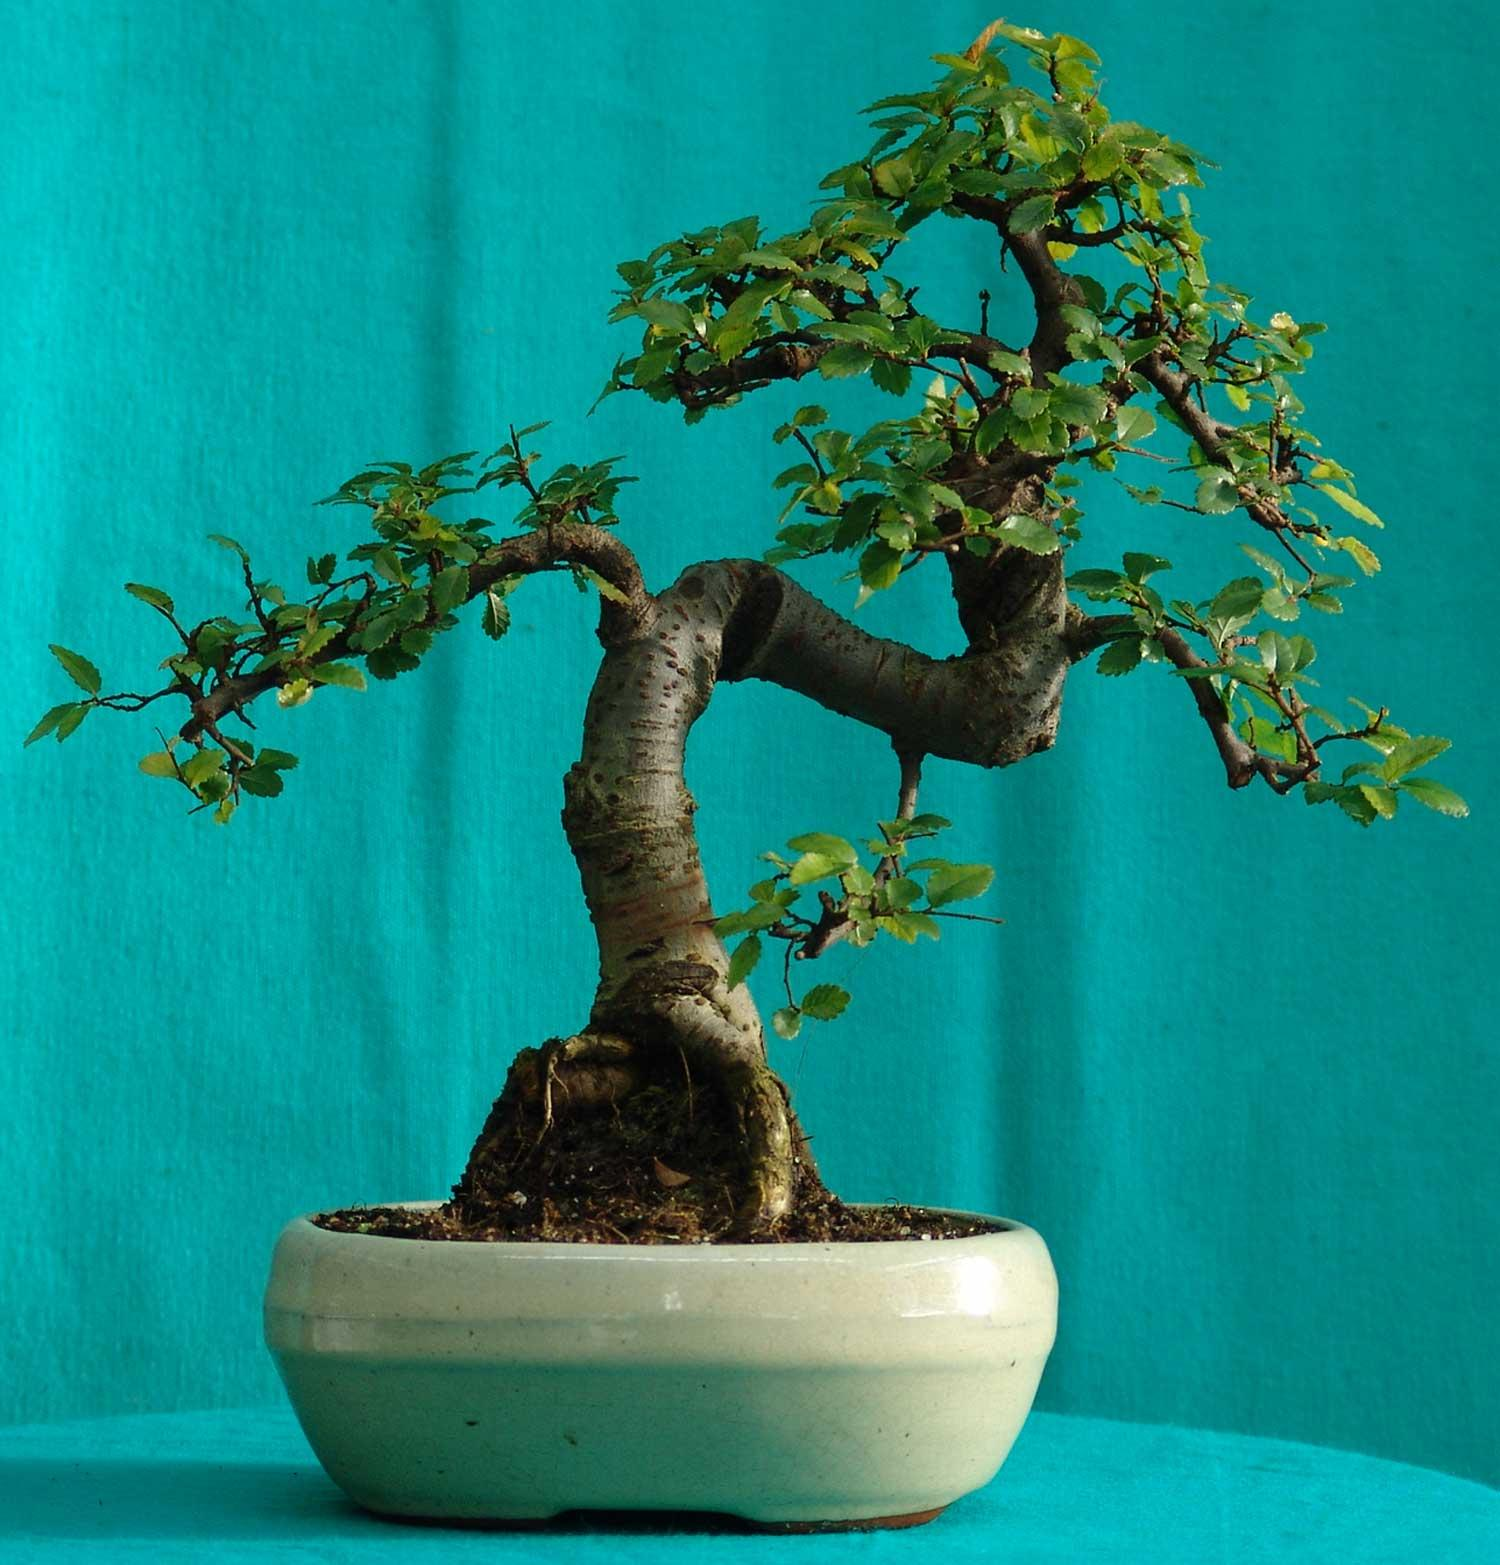 Chinese Elm Bonsai Tree Indoors